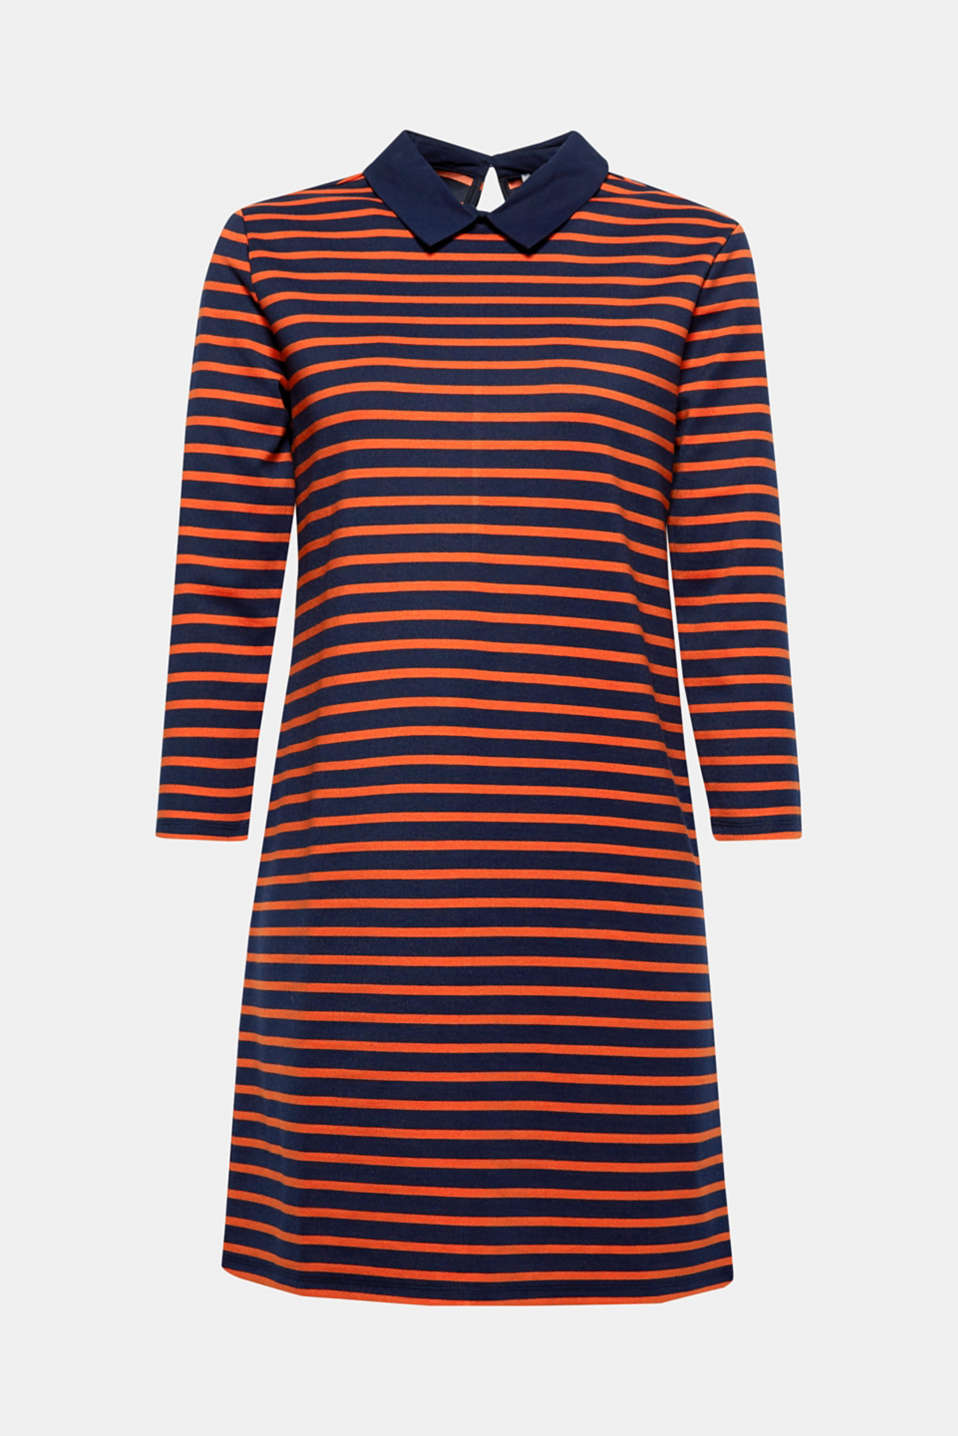 With its classic shirt collar, this stretch dress with nautical stripes will become a special styling hit.